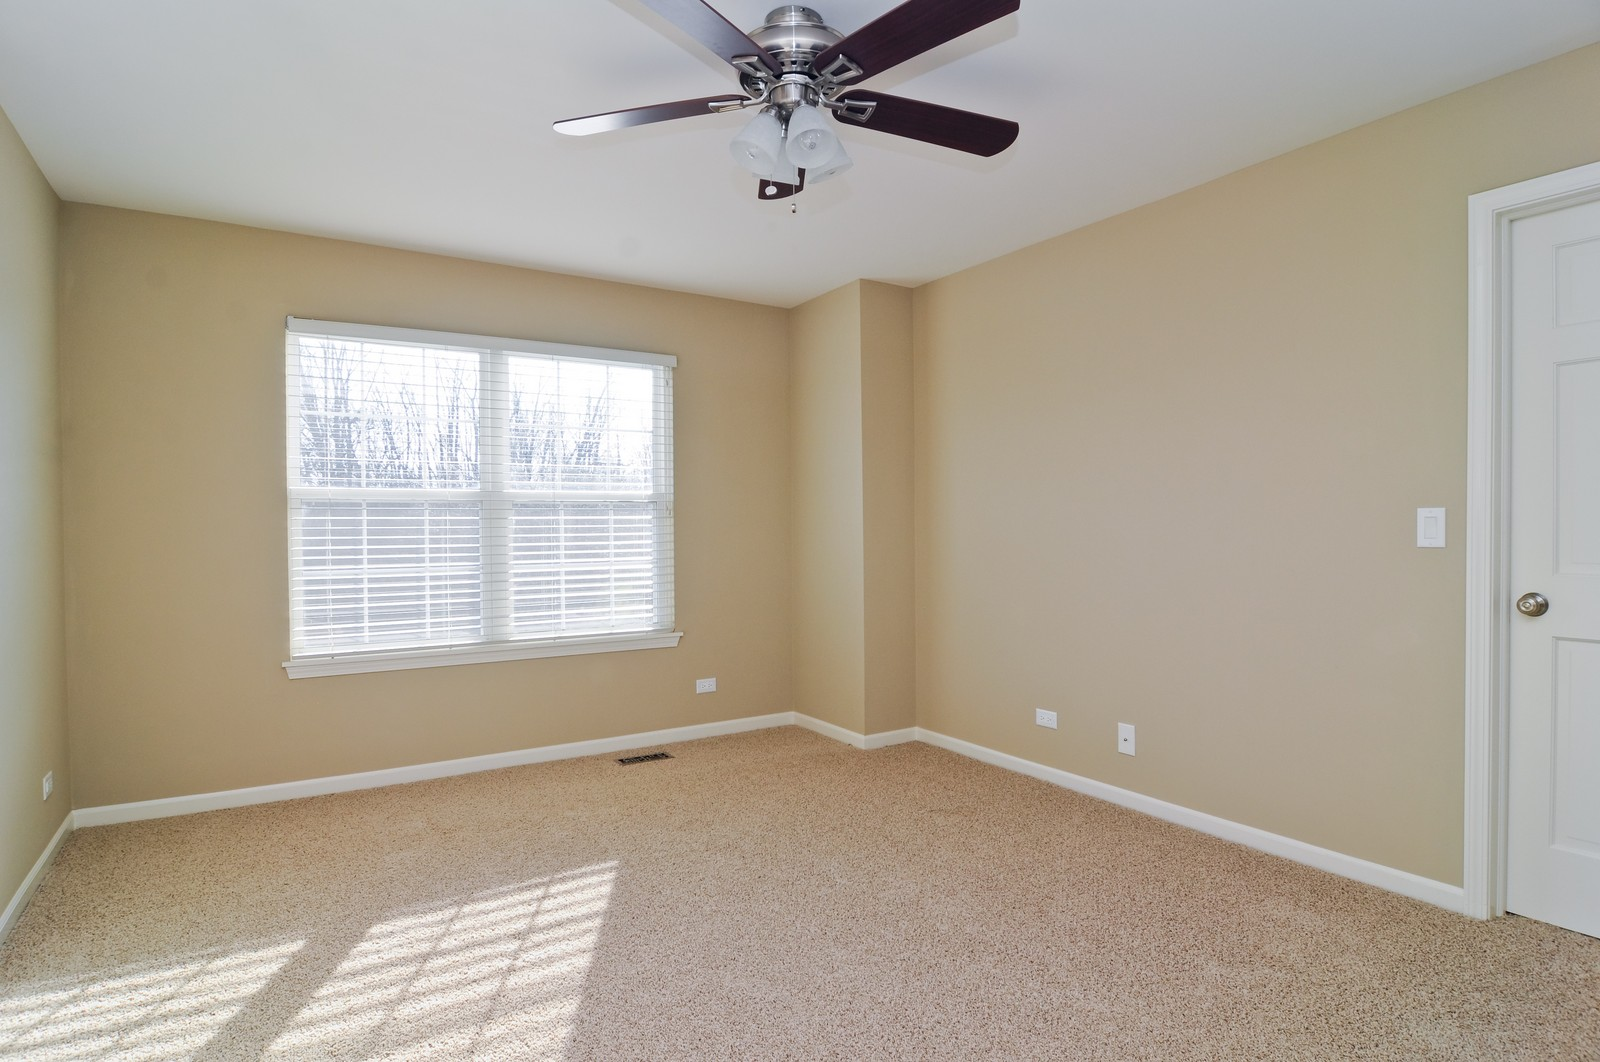 Real Estate Photography - 7394 Brentwood, Gurnee, IL, 60031 - 3rd Bedroom